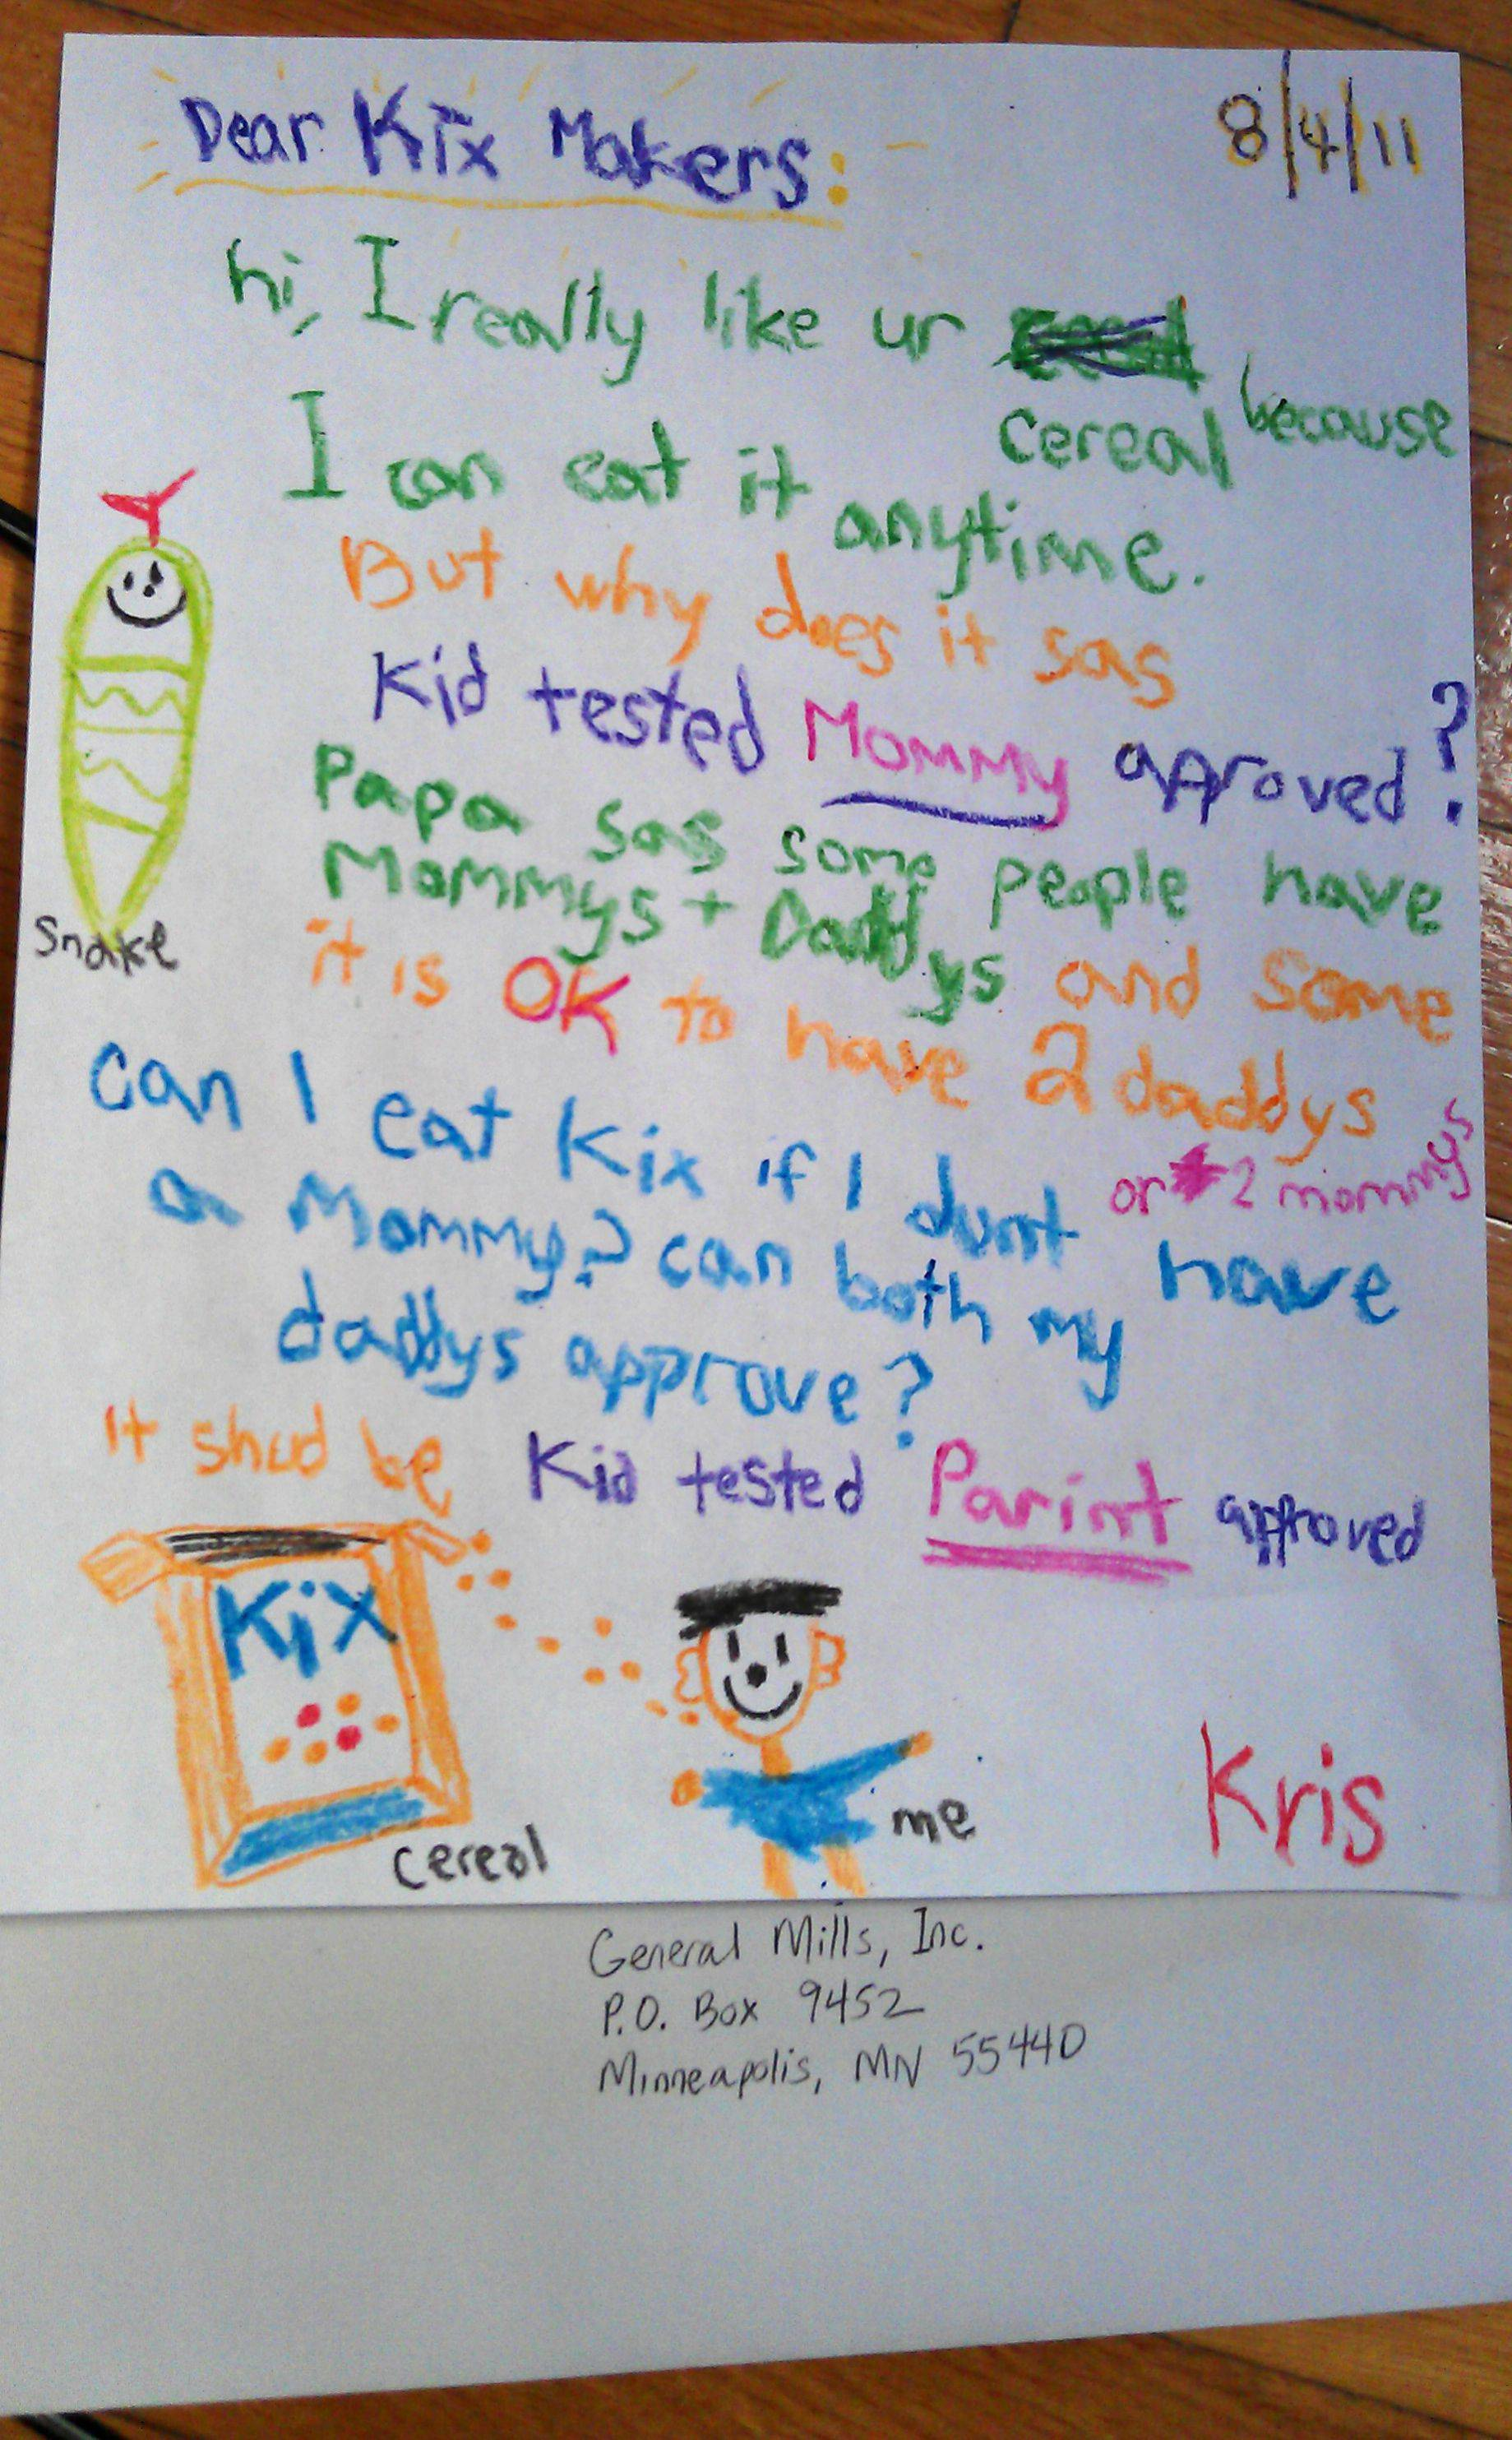 kix gay dads, letter to kix, why does it say mother approved, gay kix mommy approved,